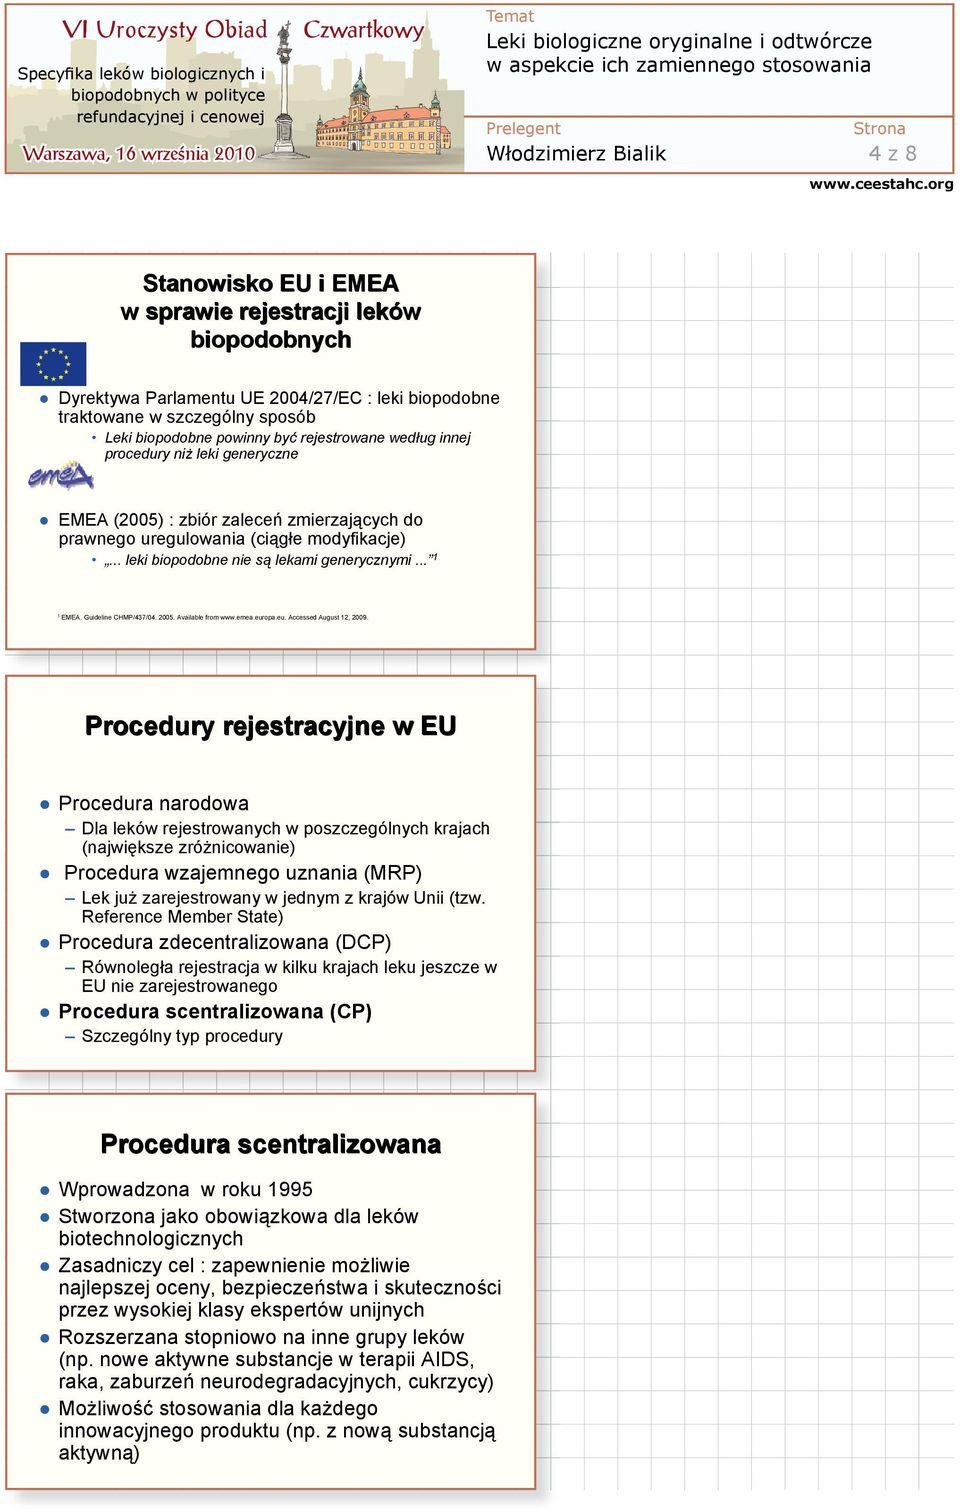 Guideline CHMP/437/04. 2005. Available from www.emea.europa.eu. Accessed August 12, 2009.